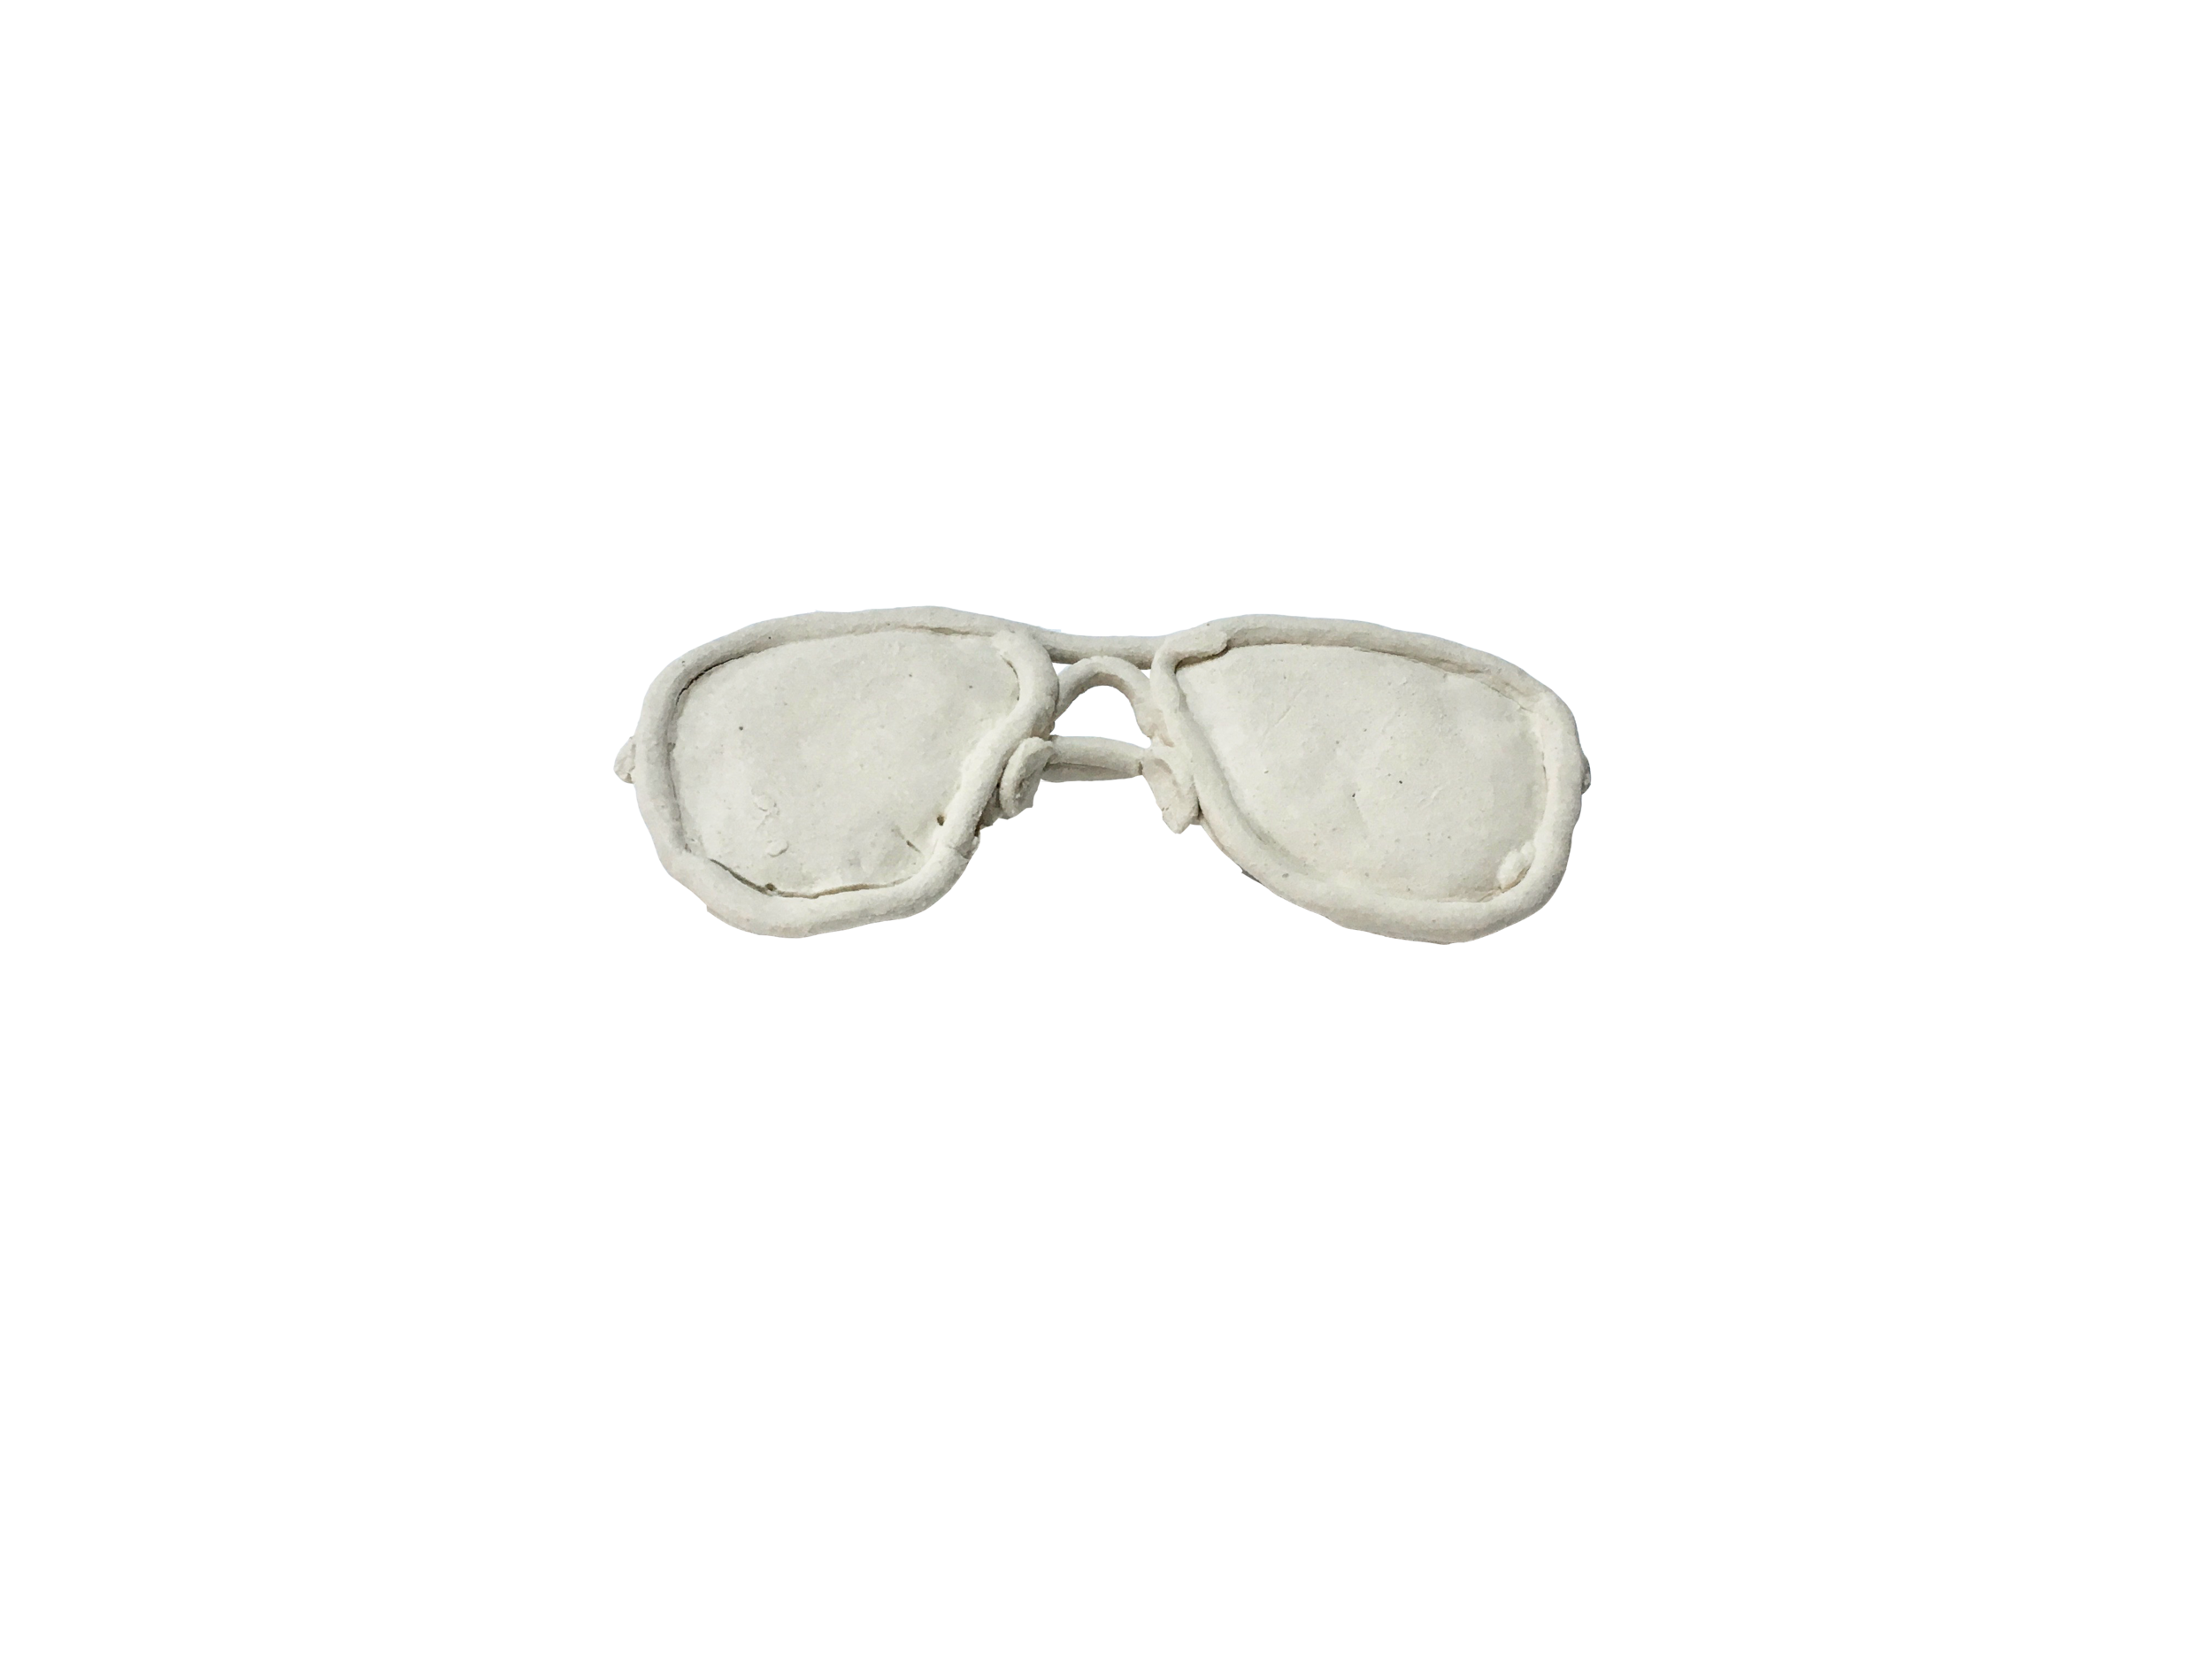 sunglasses_Marciano_12_12_18_giannelli.png